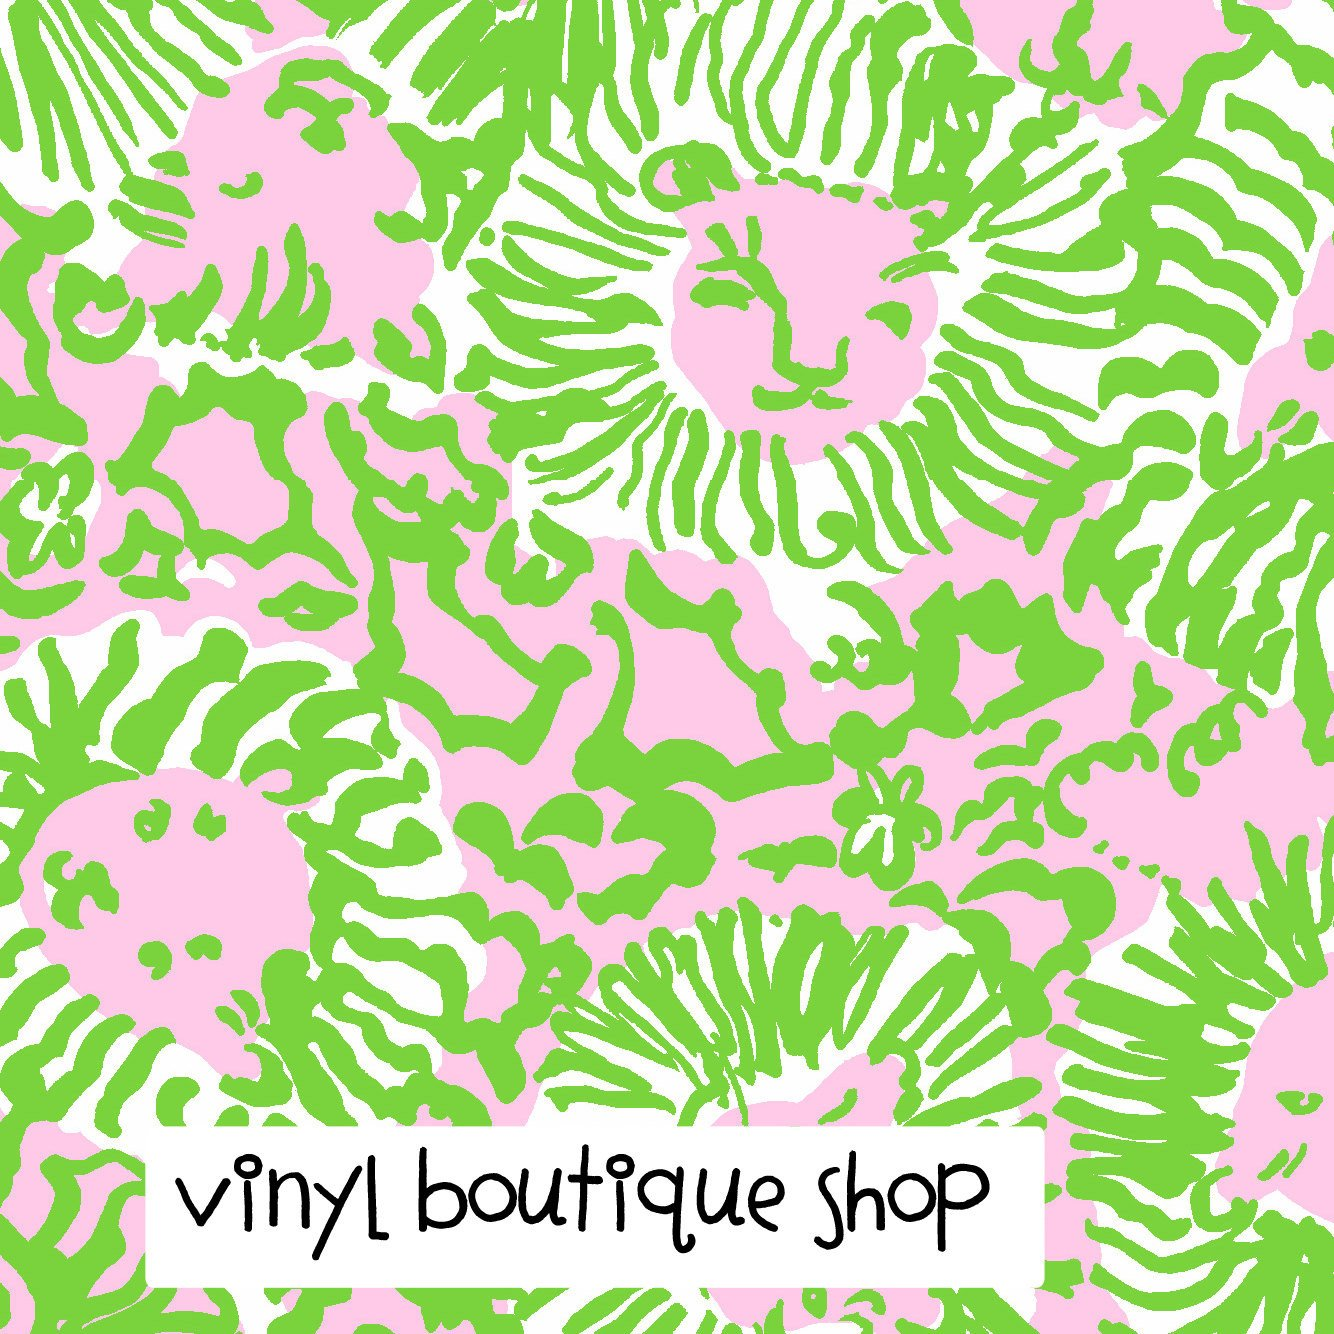 Sunnyside Green Lilly Inspired Printed Patterned Craft Vinyl